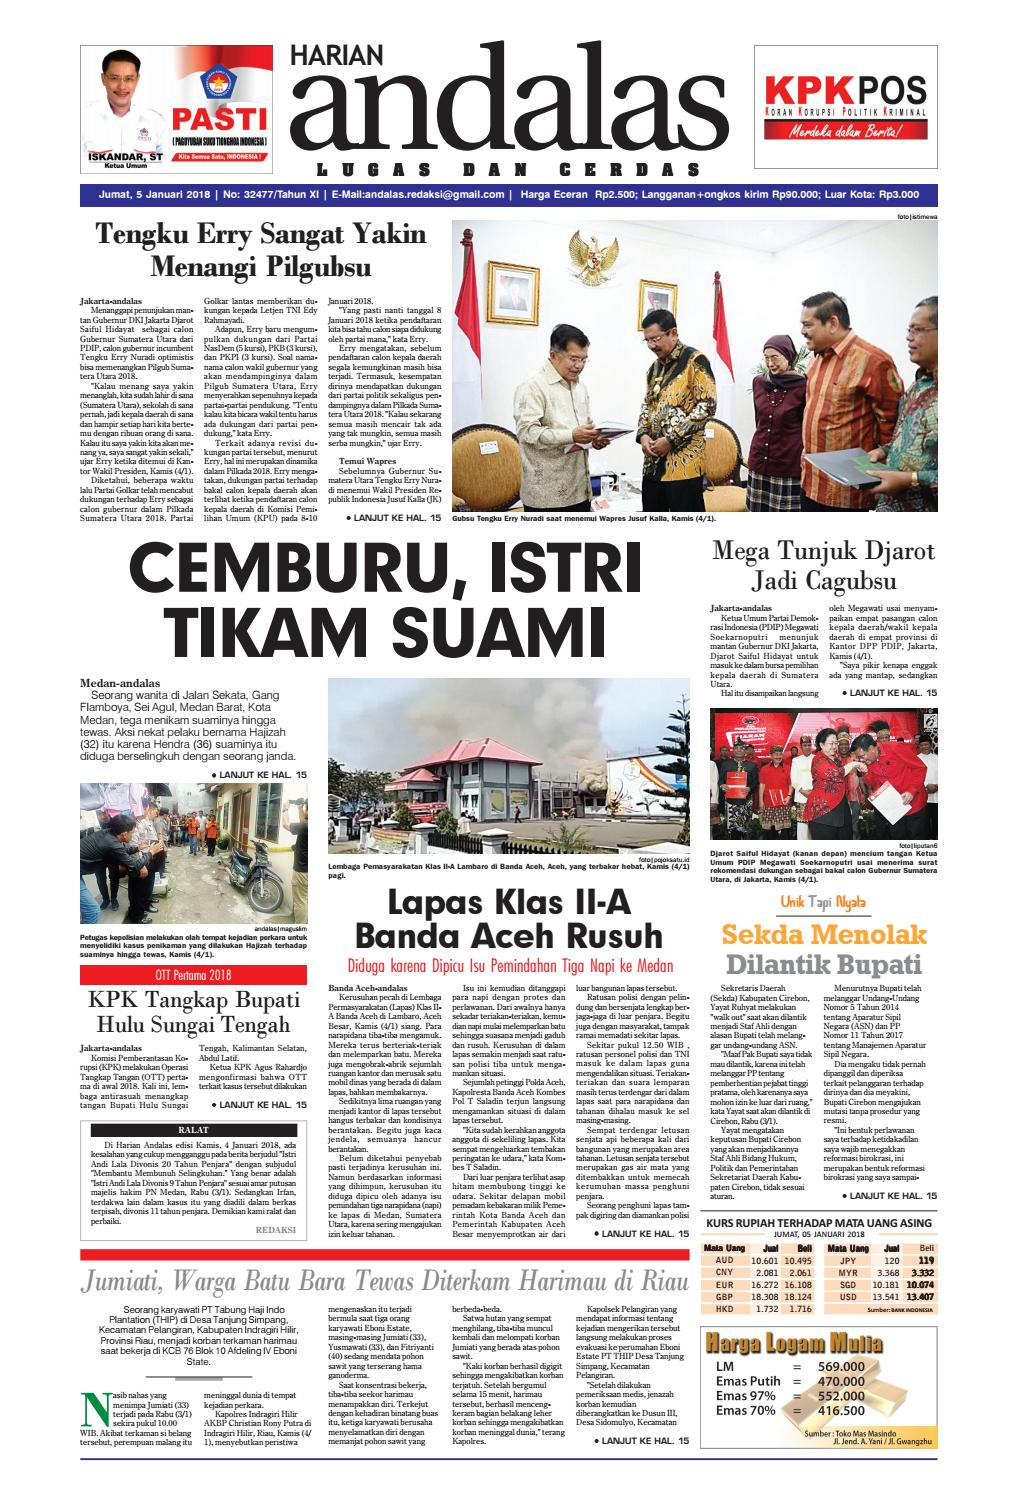 Epaper Andalas Edisi Jumat 5 Januari 2018 By Media Andalas Issuu